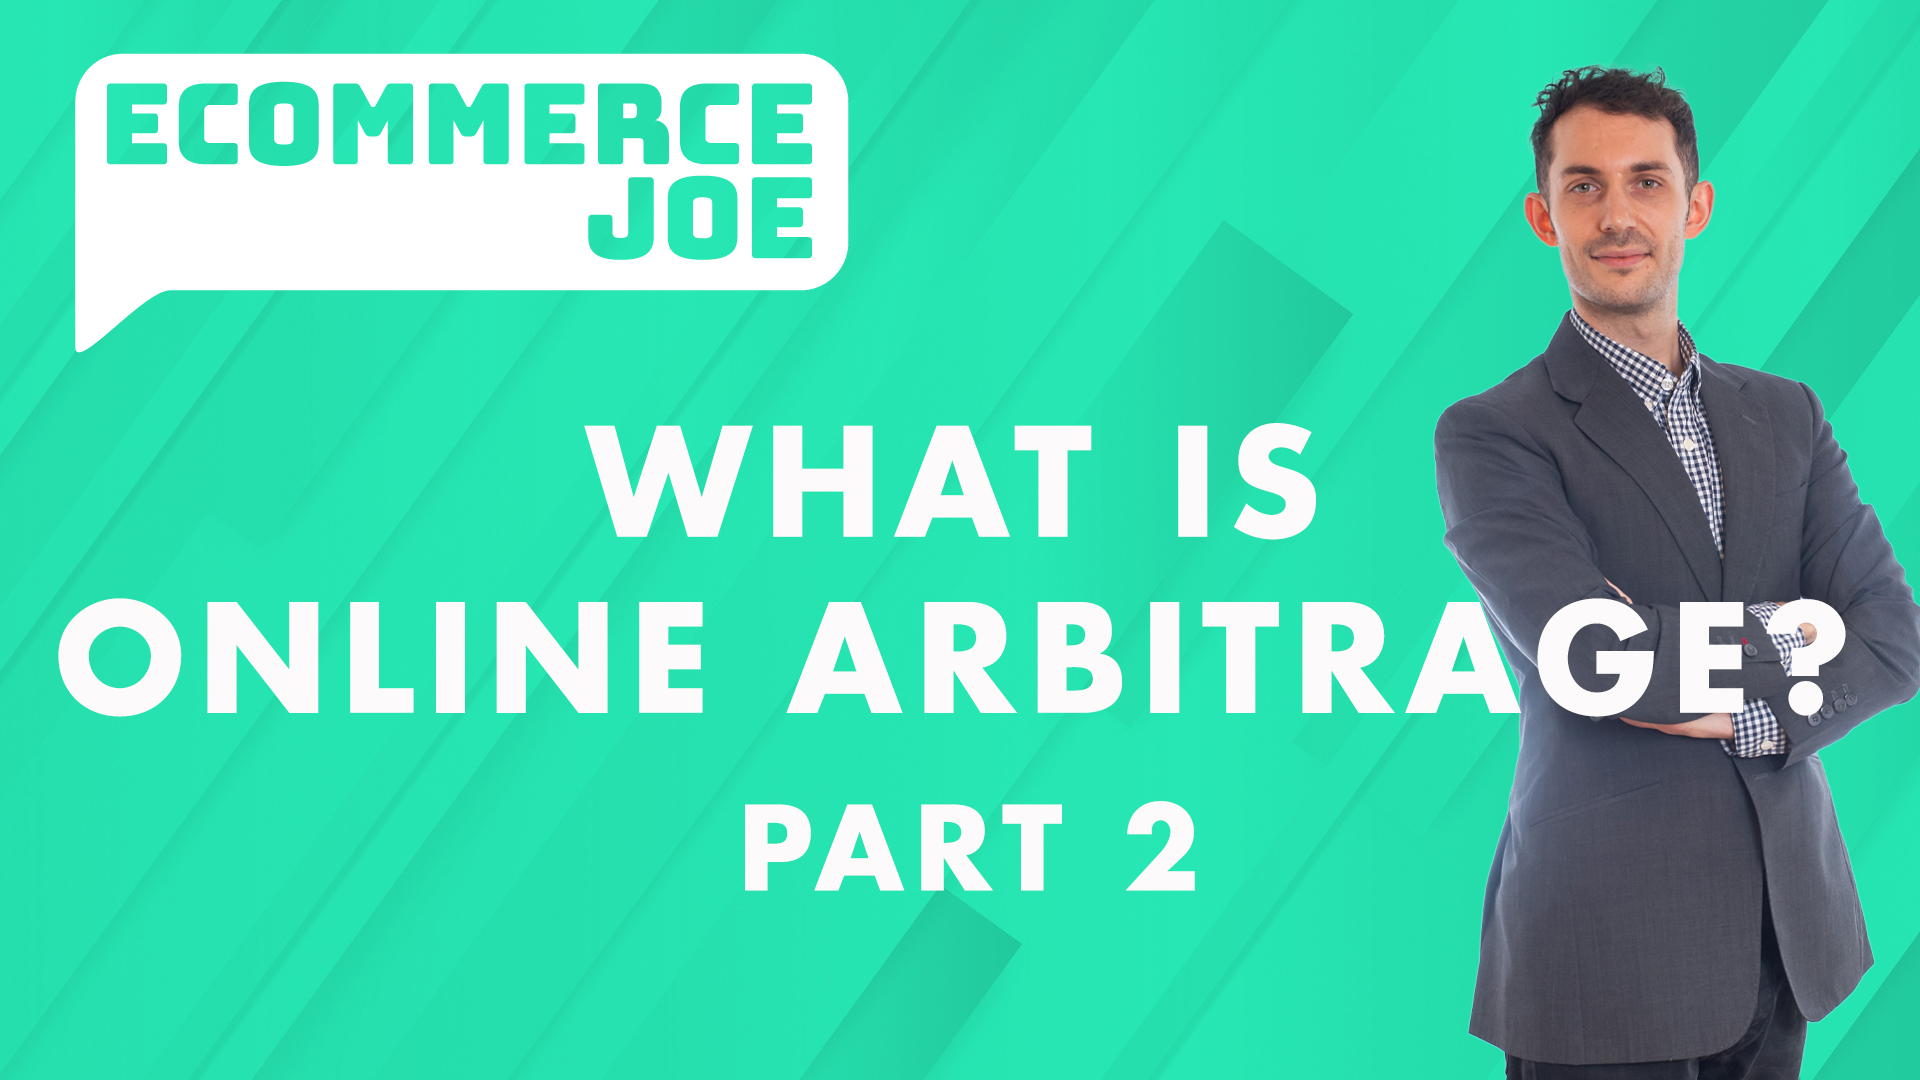 What is ONLINE ARBITRAGE? Part 2 | Learn the basics and get an overview of Online Arbitrage